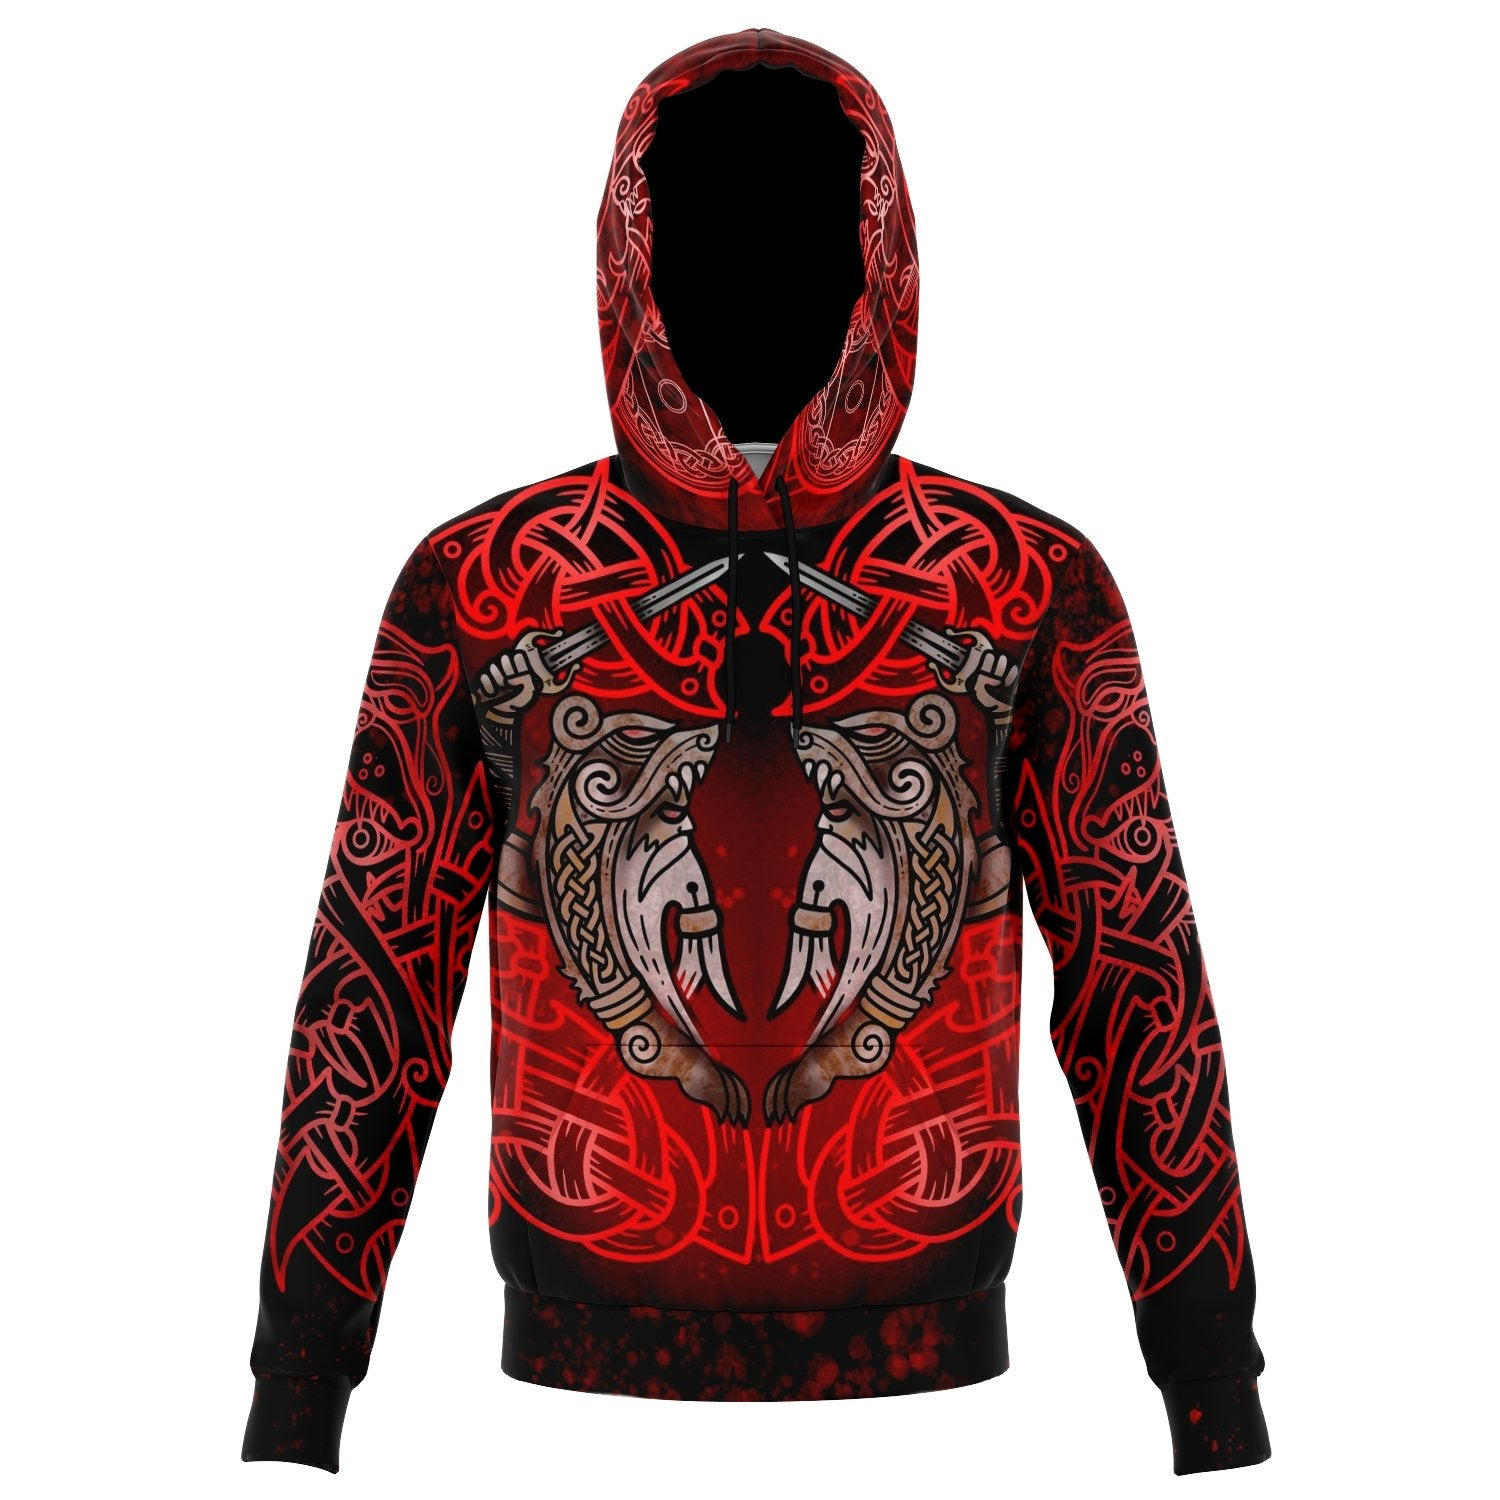 Berserker Warrior Cotton Hoodie